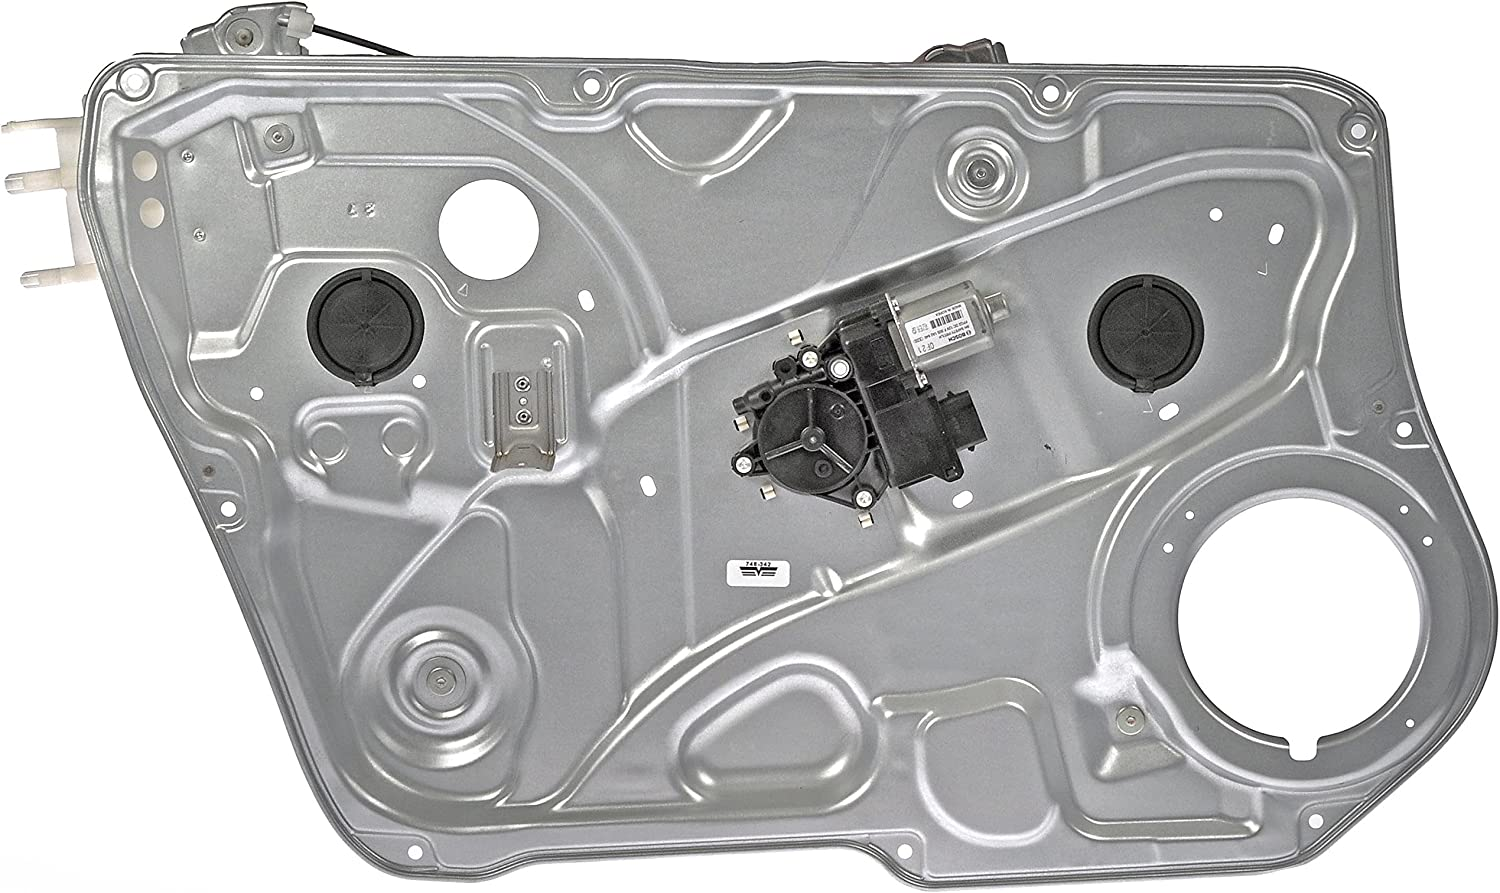 Dorman 748-342 Front Driver Side Power Window Regulator and Motor Assembly for Select Hyundai Models